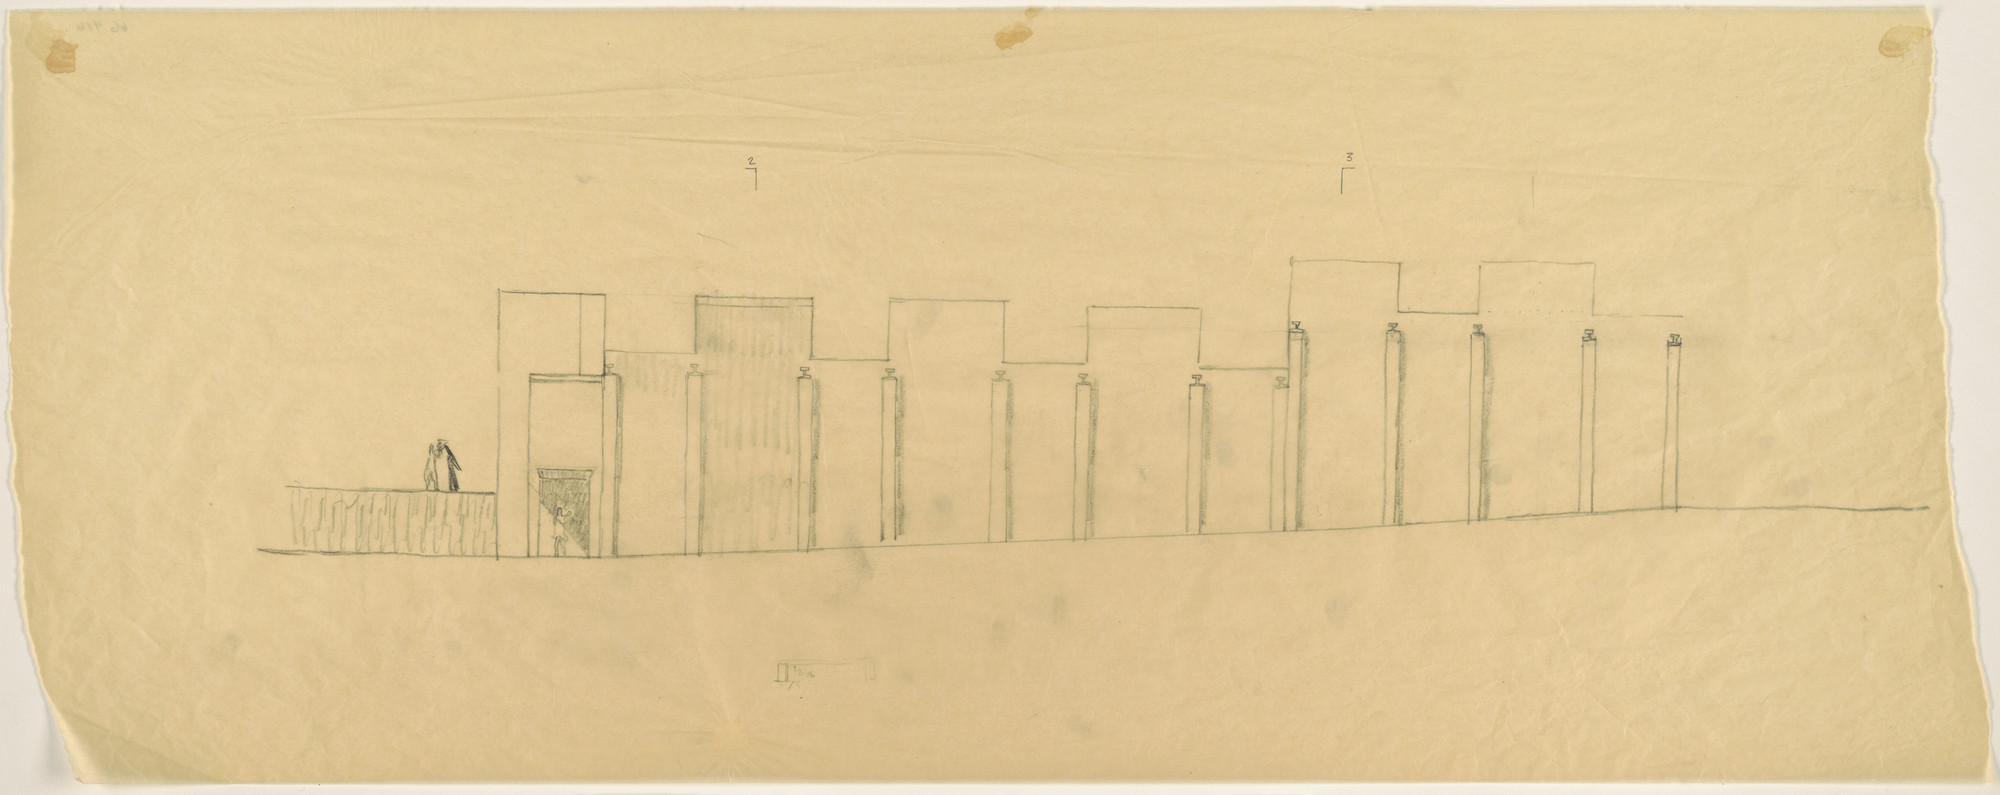 Louis I. Kahn. Tribune Review Publishing Company Building, Greensburg, Pennsylvania, Elevation sketch. 1958